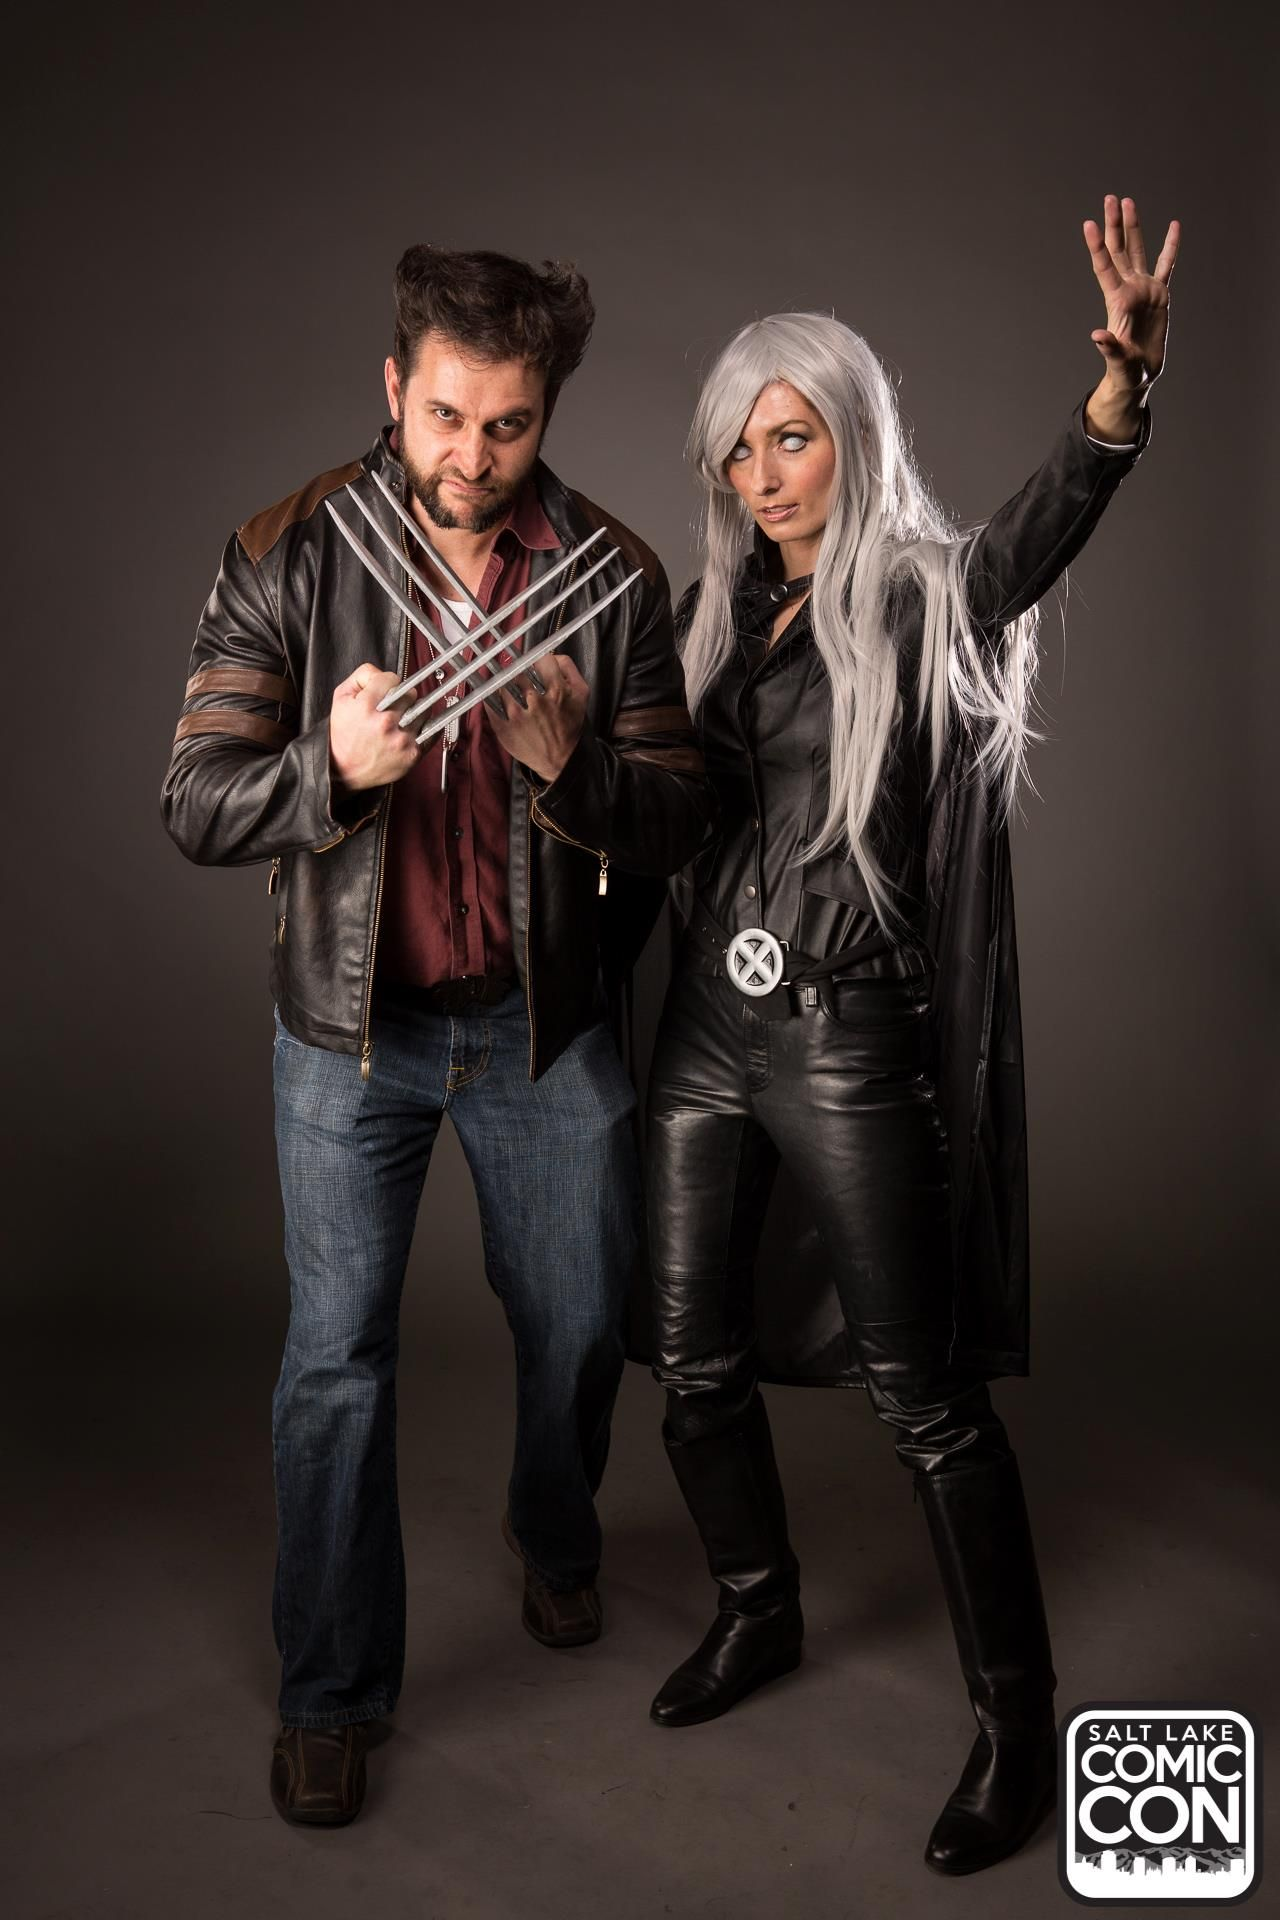 Wolverine and Storm from X-Men cosplayers at Salt Lake Comic Con 2015 · Couple Costume ...  sc 1 st  Pinterest & Wolverine and Storm from X-Men cosplayers at Salt Lake Comic Con ...